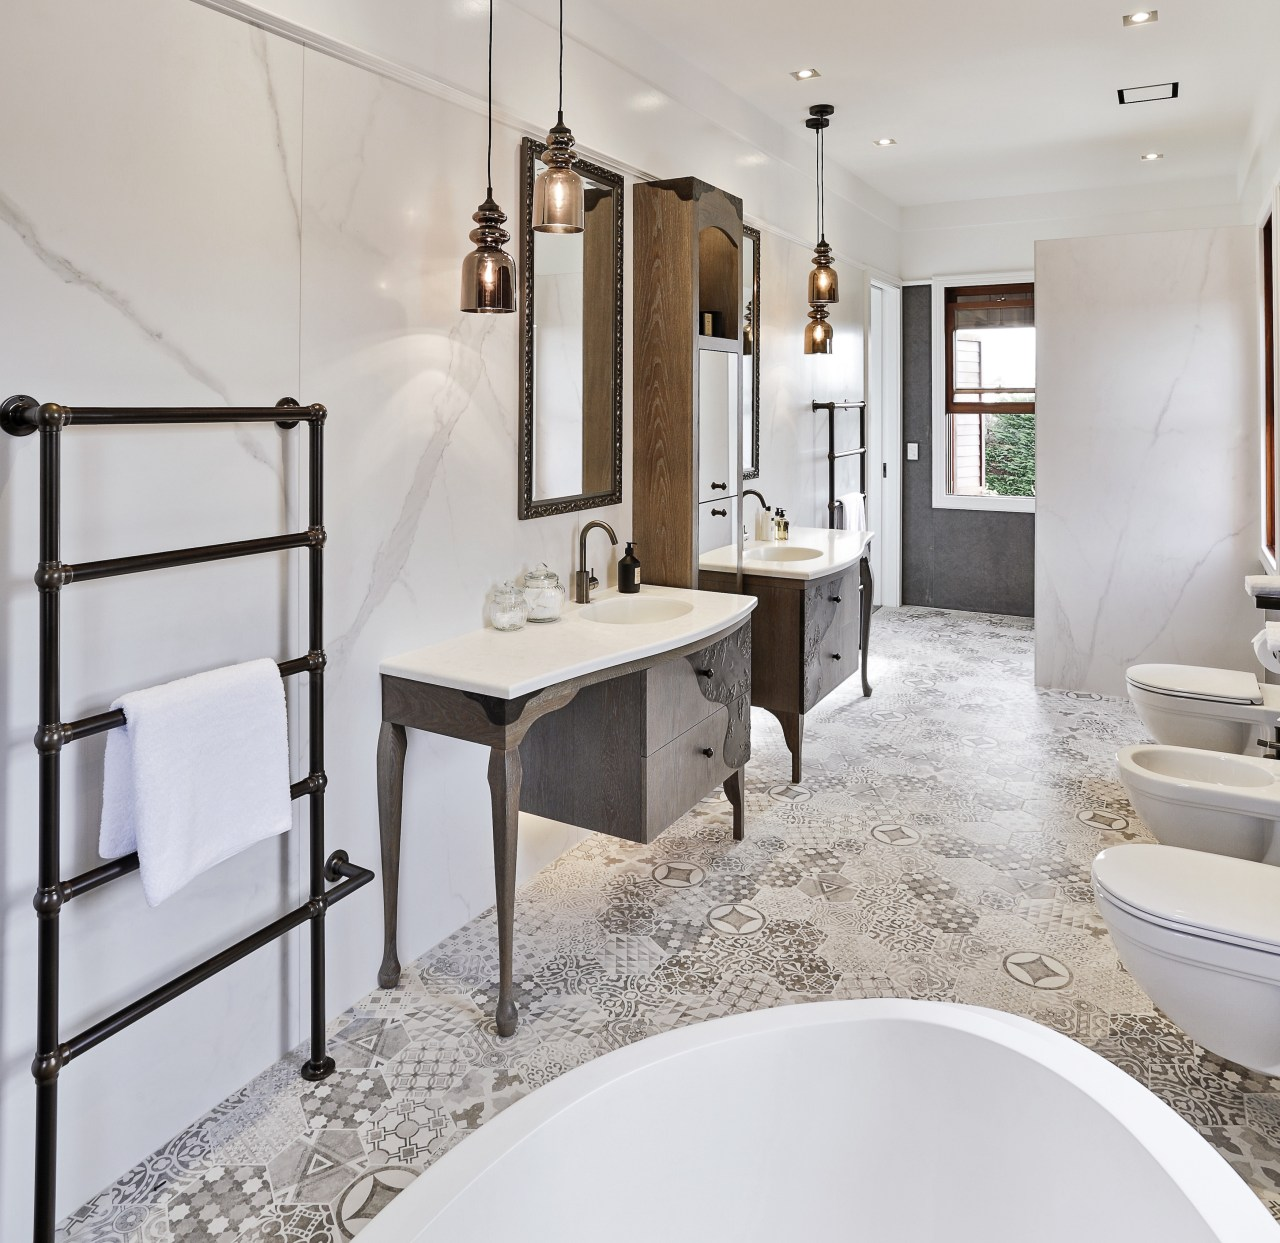 The owners wanted a bathroom with a luxurious bathroom, home, interior design, plumbing fixture, room, sink, tap, gray, white